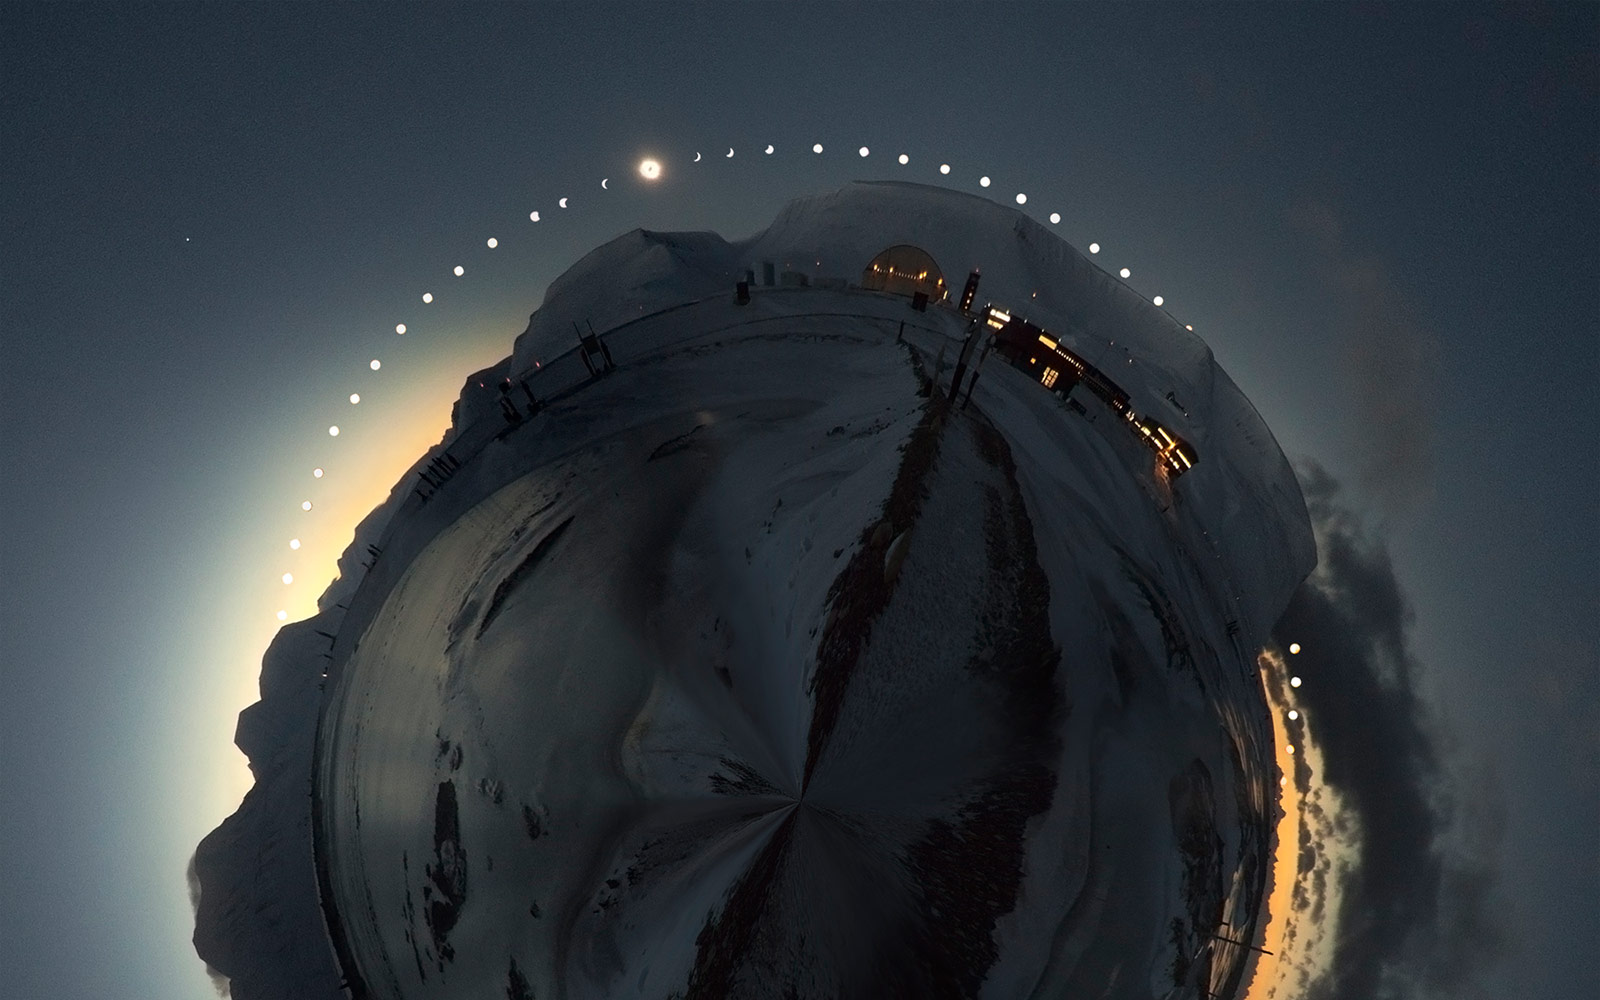 This Total Solar Eclipse Photo Took 12 Hours to Shoot